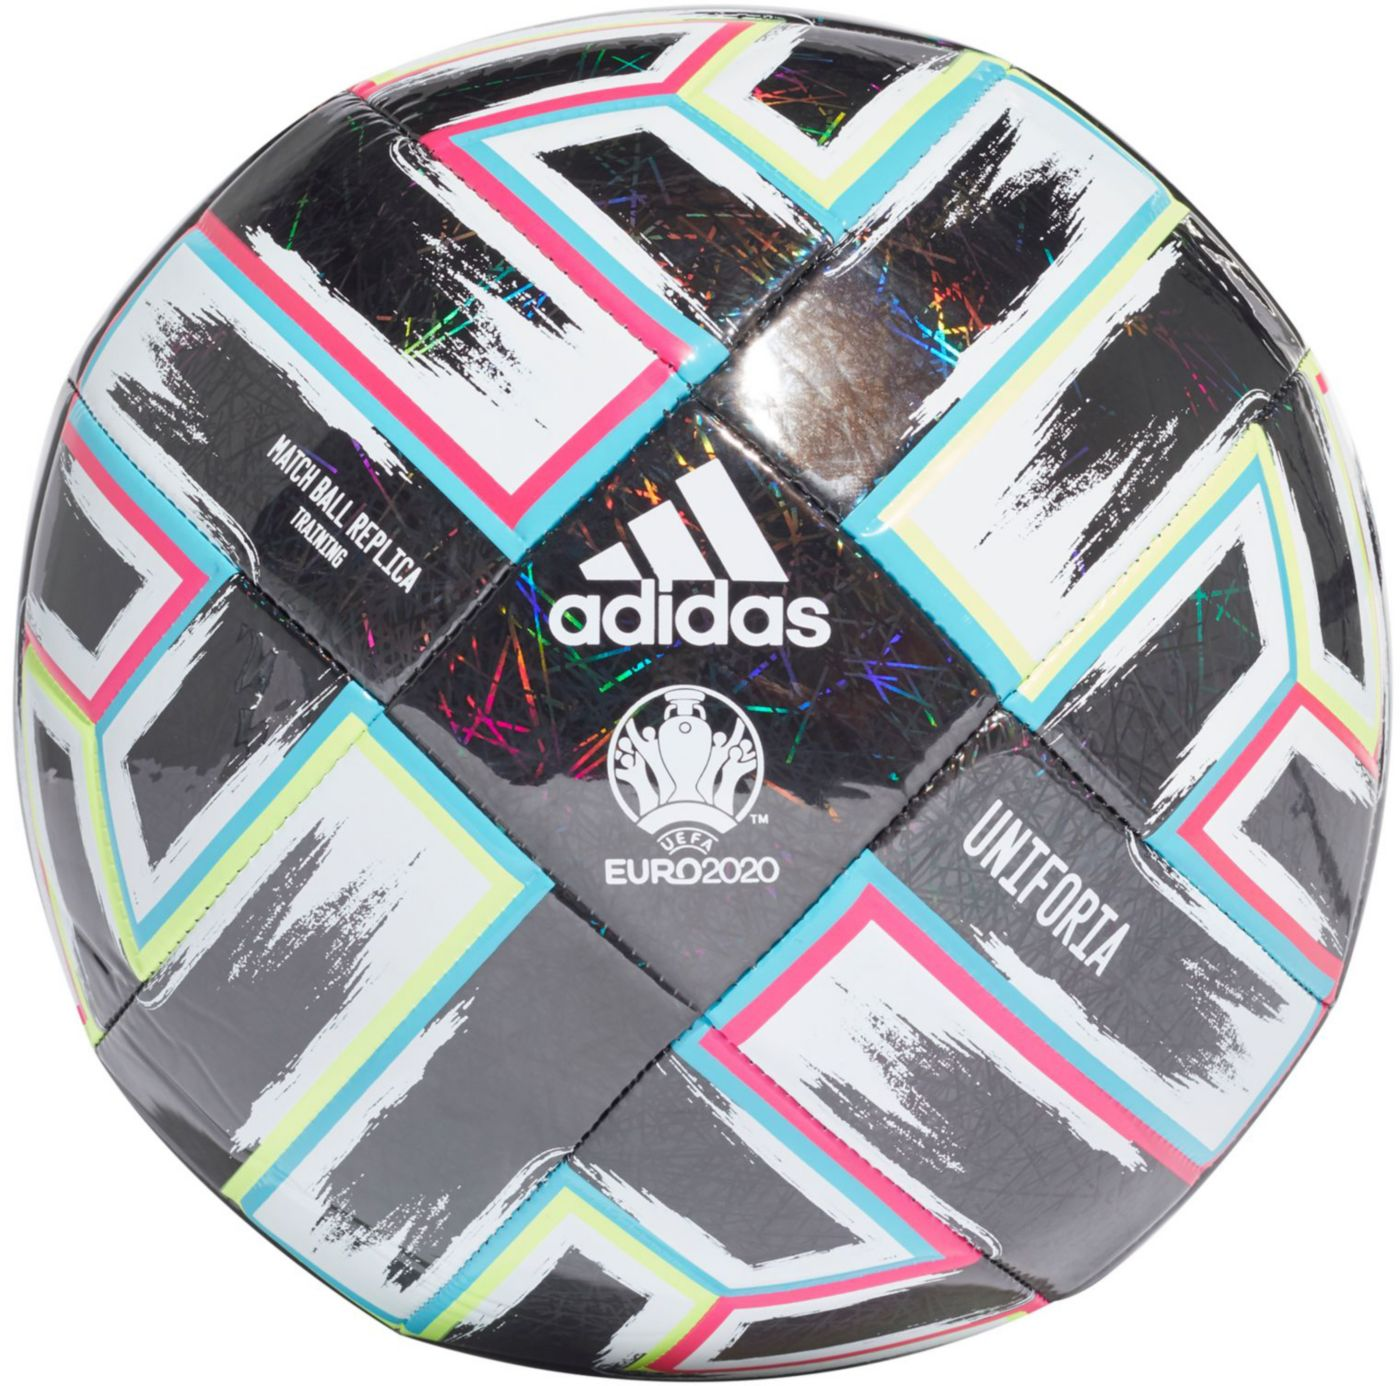 adidas Euro 2020 Uniforia Training Soccer Ball